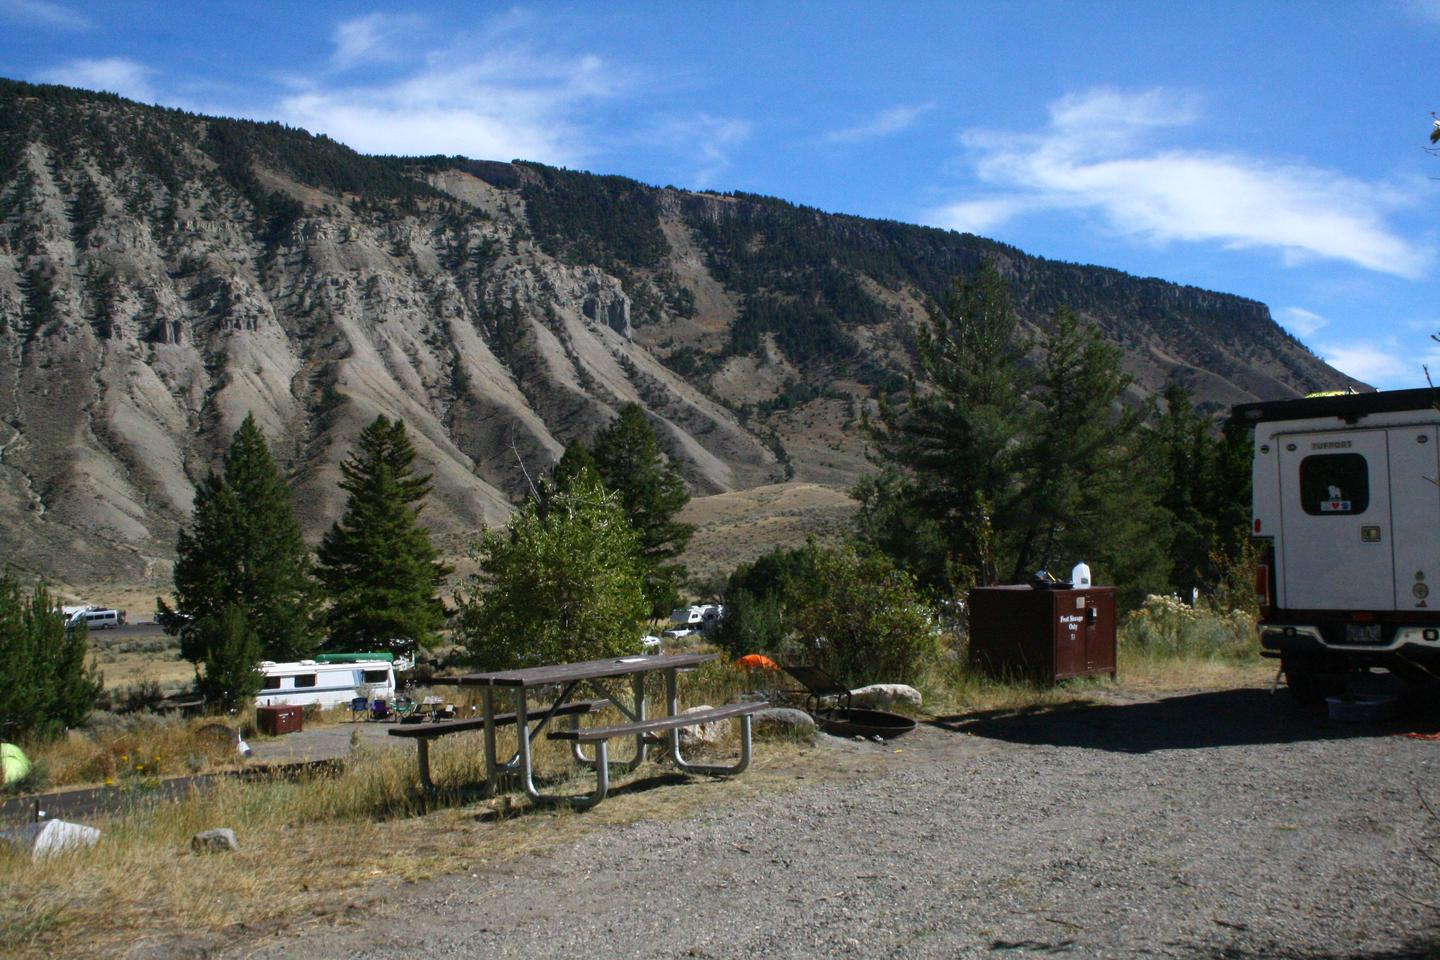 Mammoth Hot Springs Campground Site 51.Mammoth Campsite #51